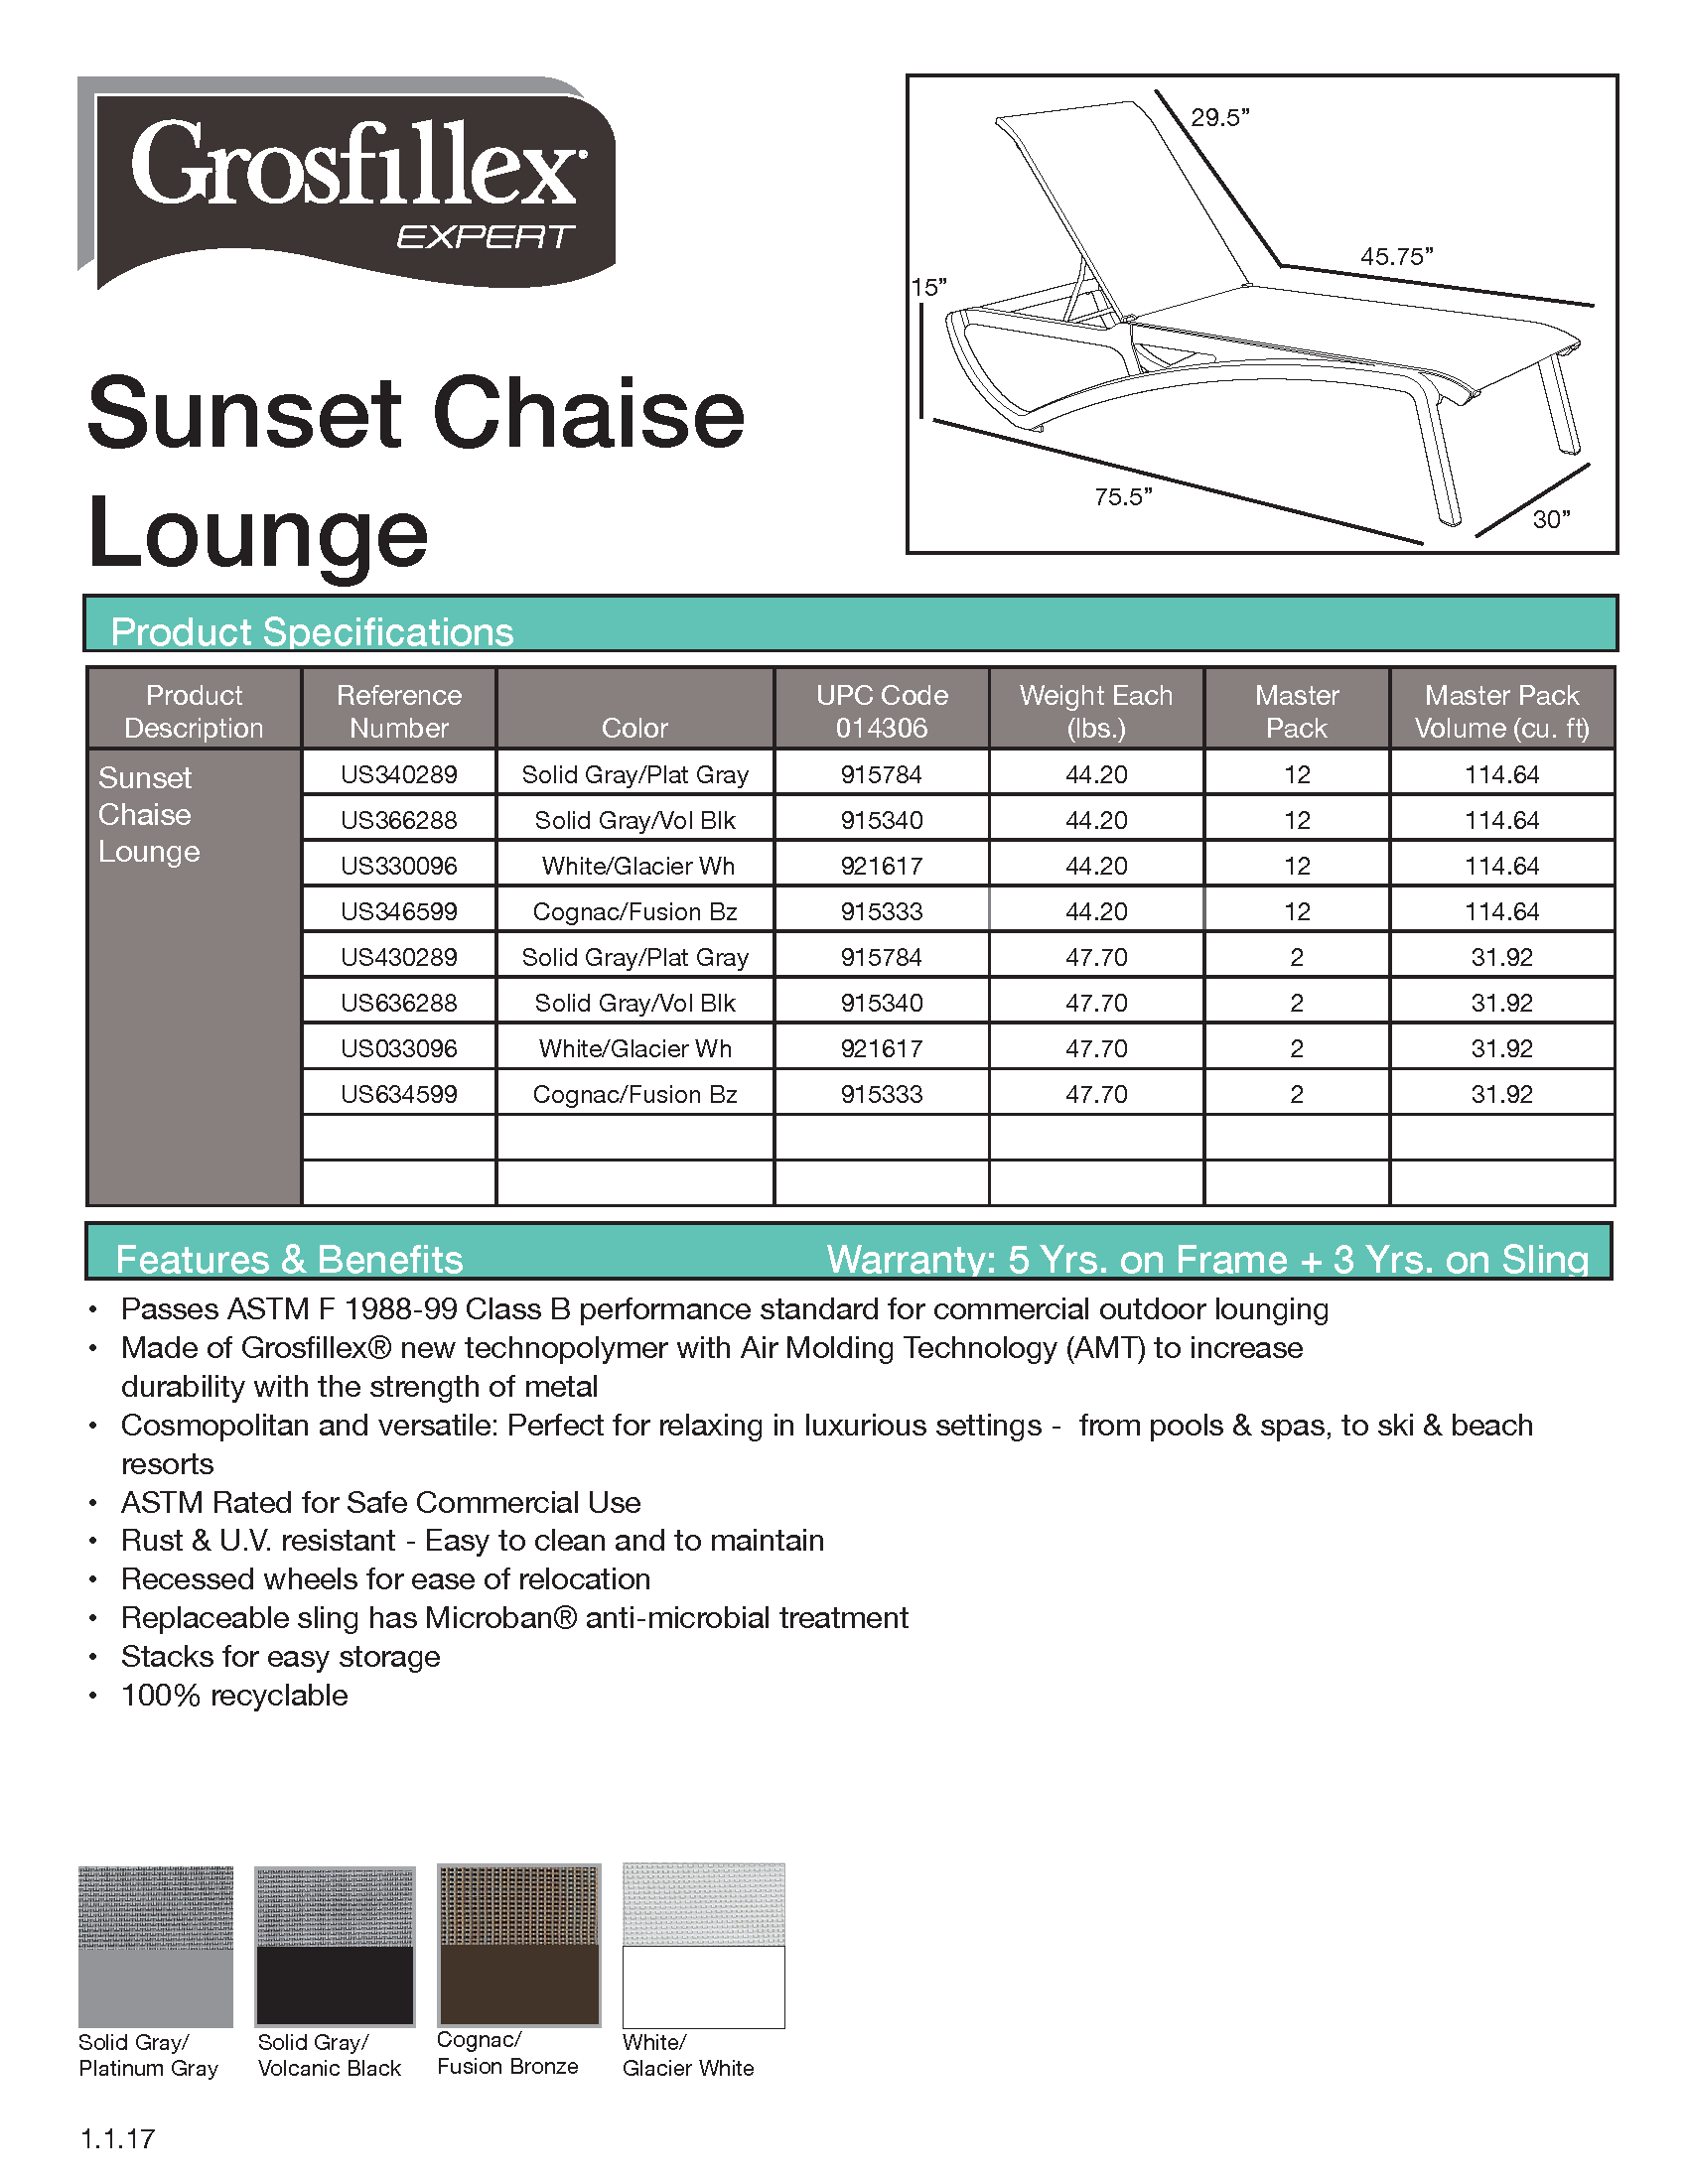 Sunset Chaise